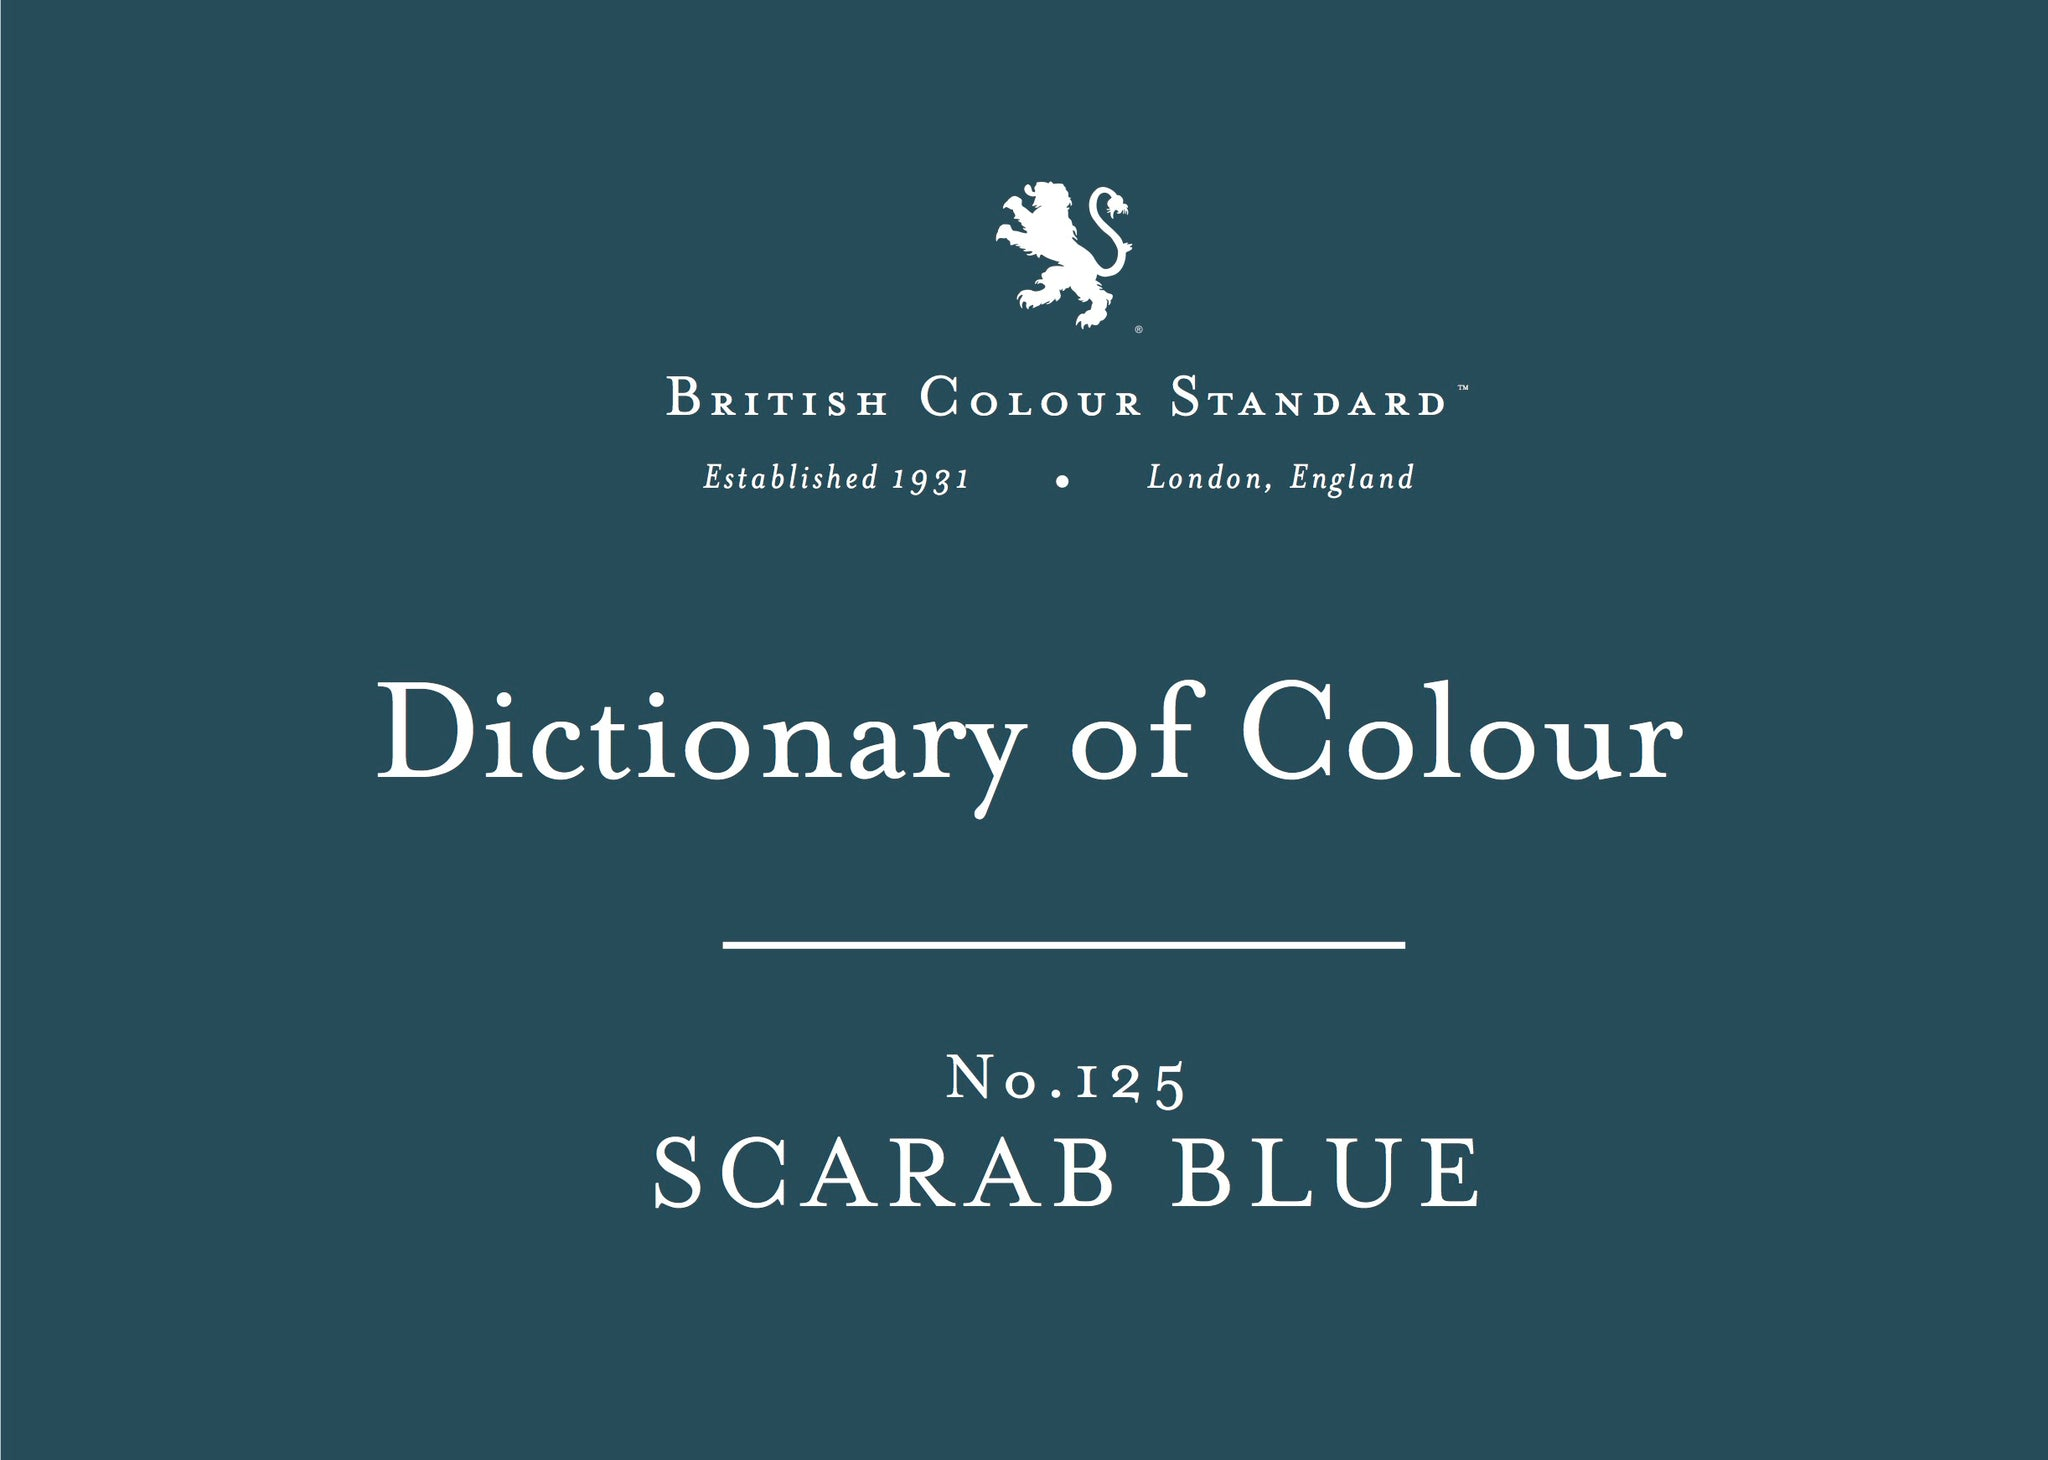 BRITISH COLOUR STANDARD - Scarab Blue No. 125